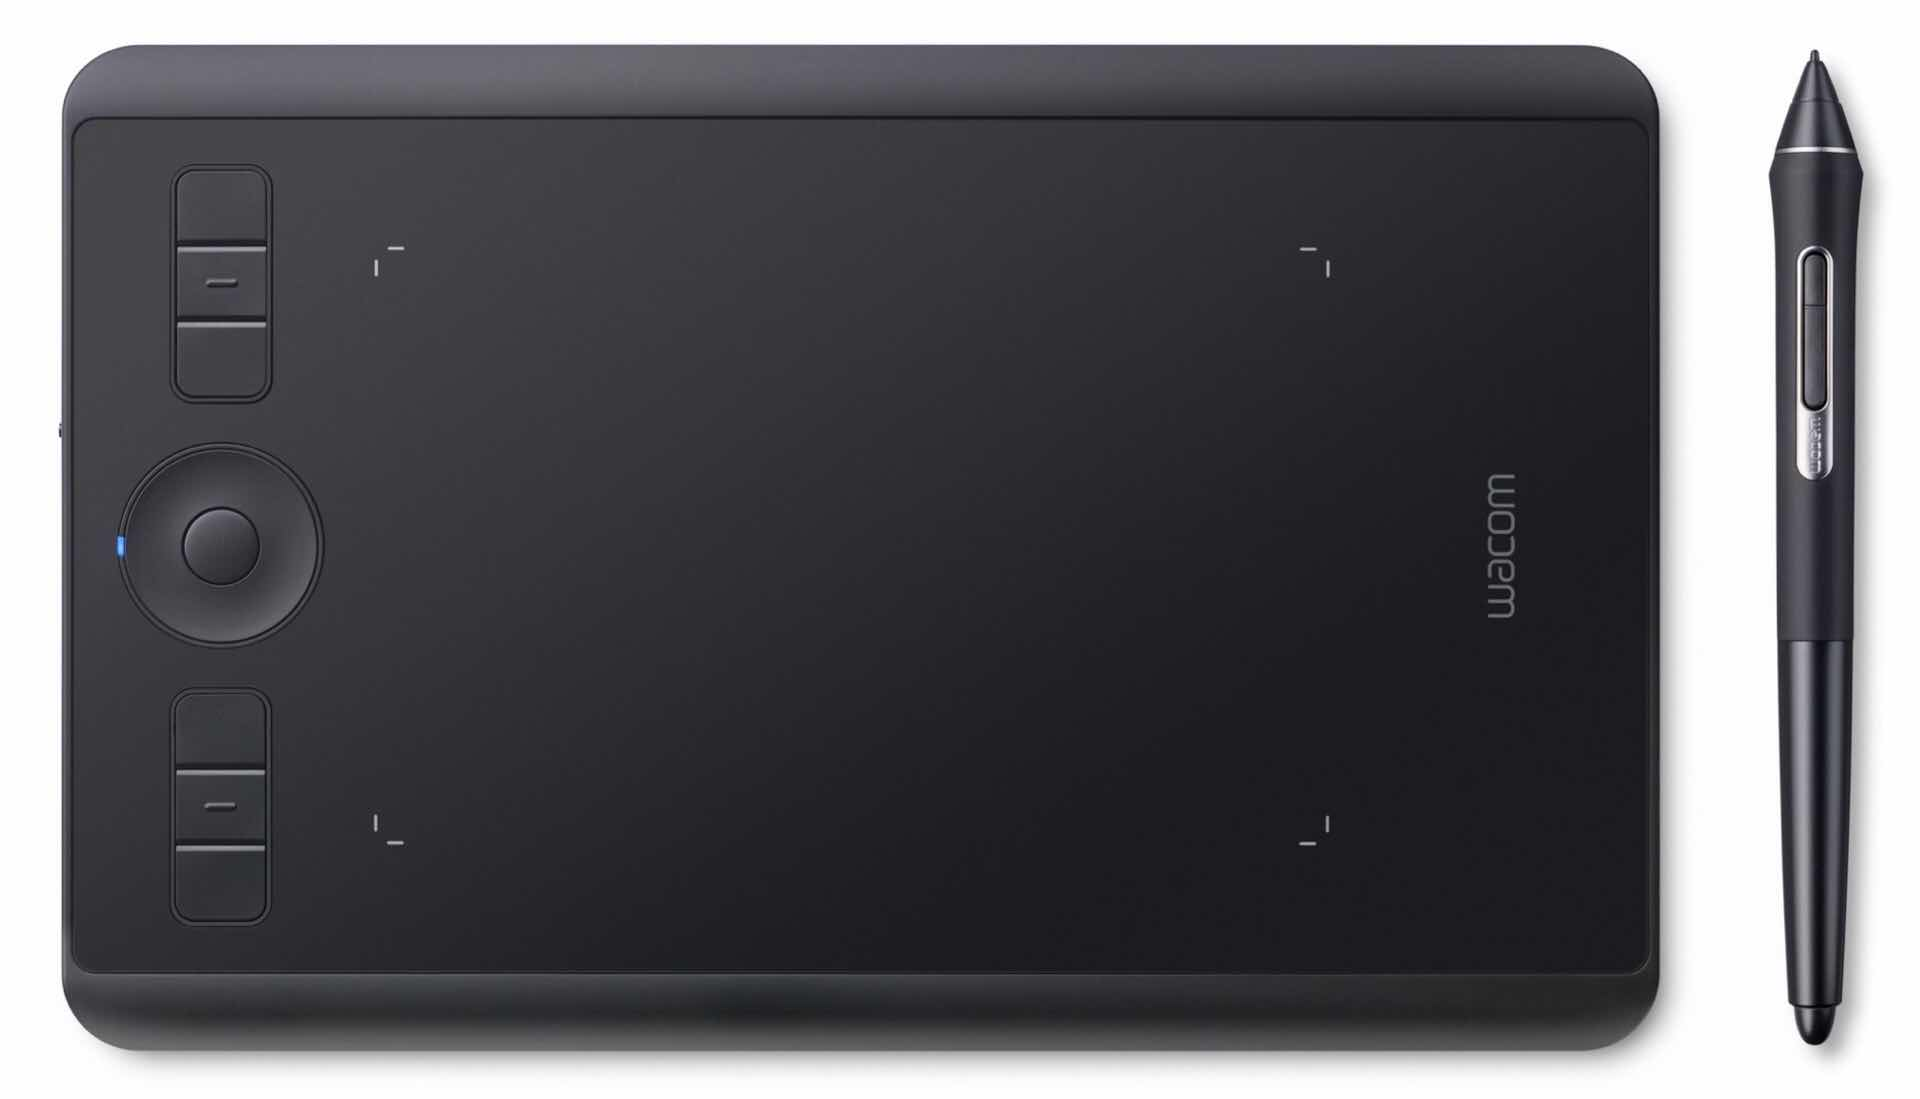 wacom-intuos-pro-small-wireless-drawing-tablet